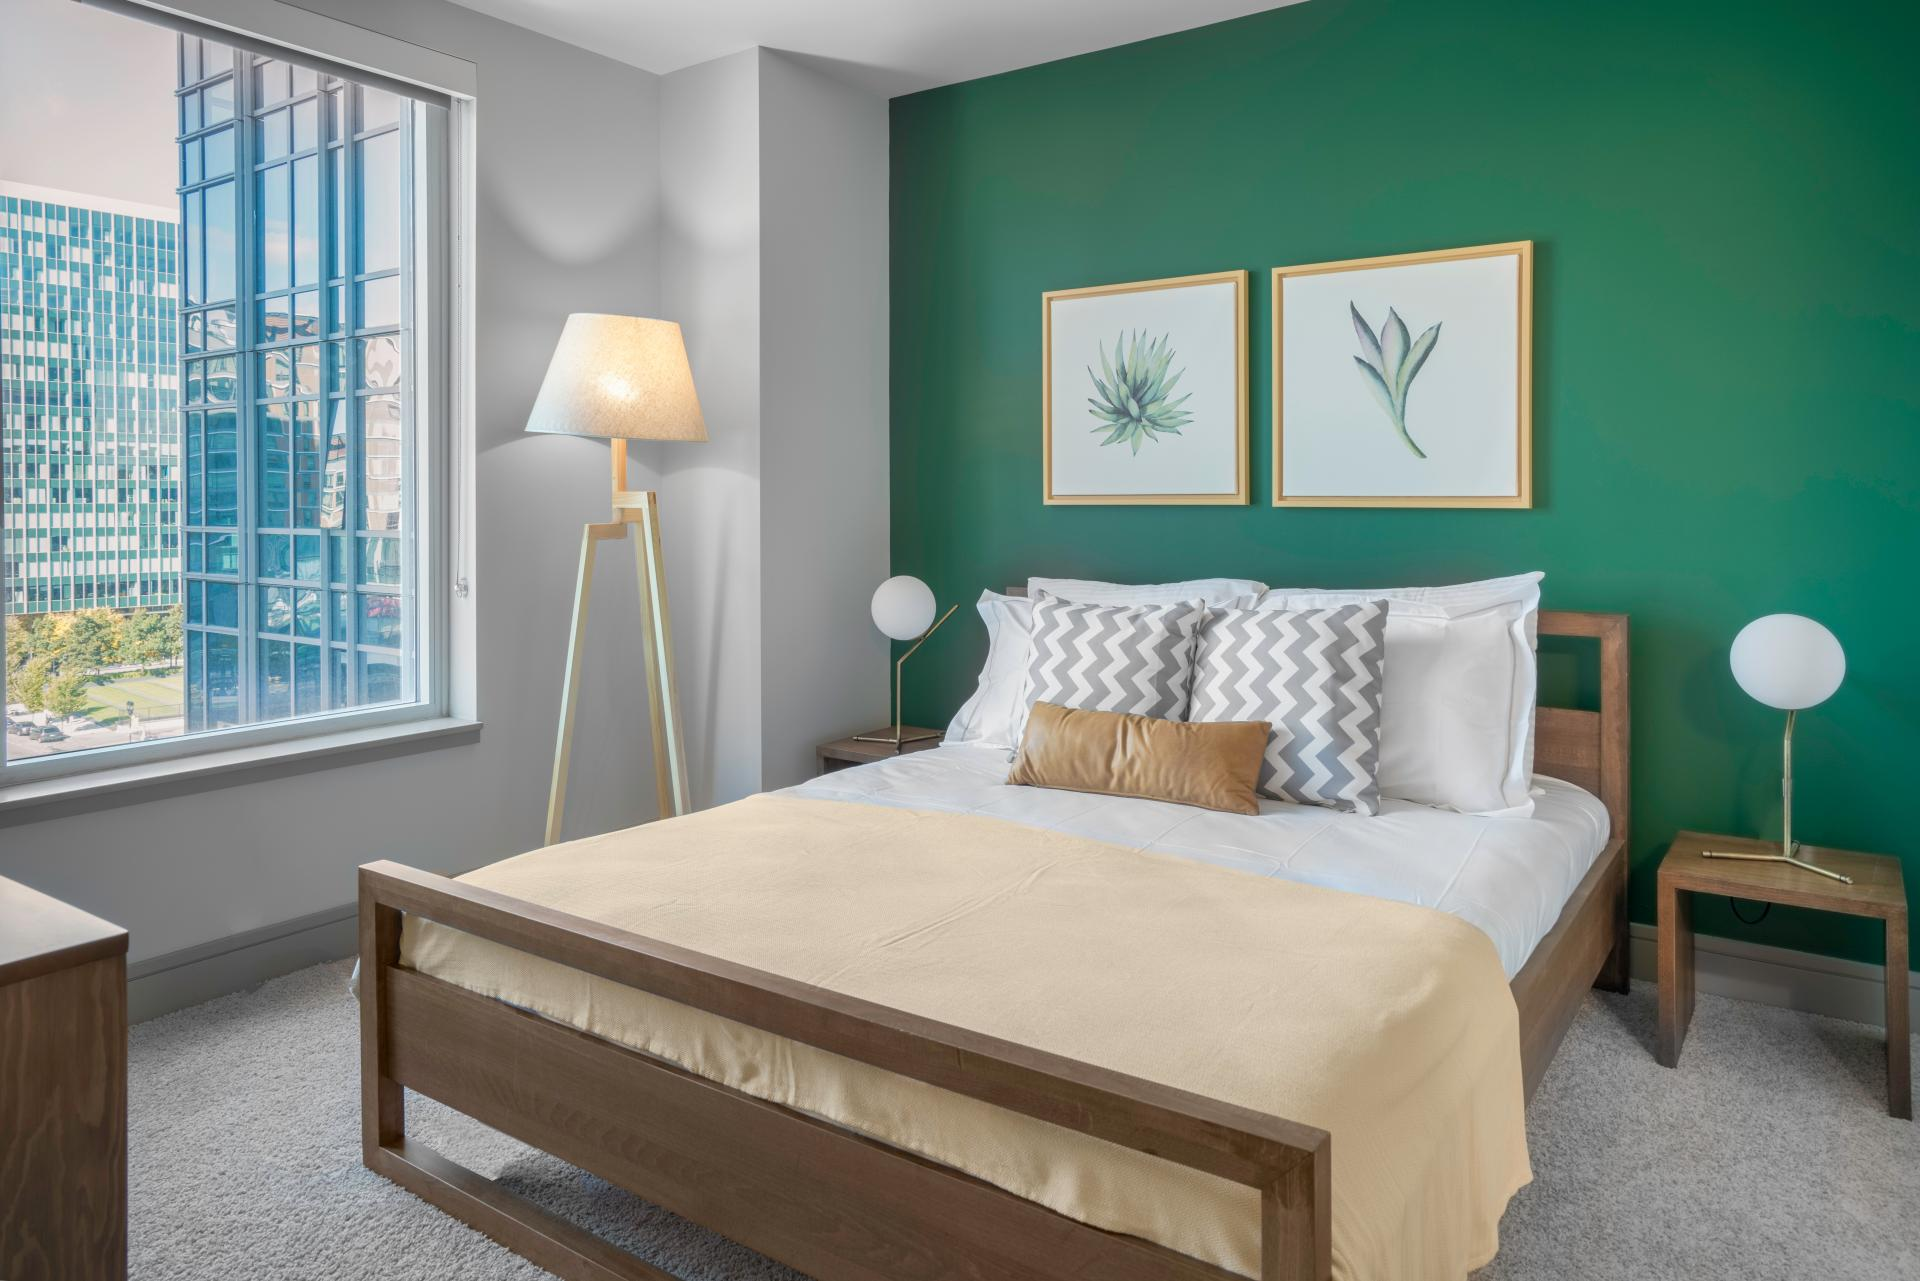 blueprint blueground one bedroom apartment Boston bedroom with wooden bedframe against green walls